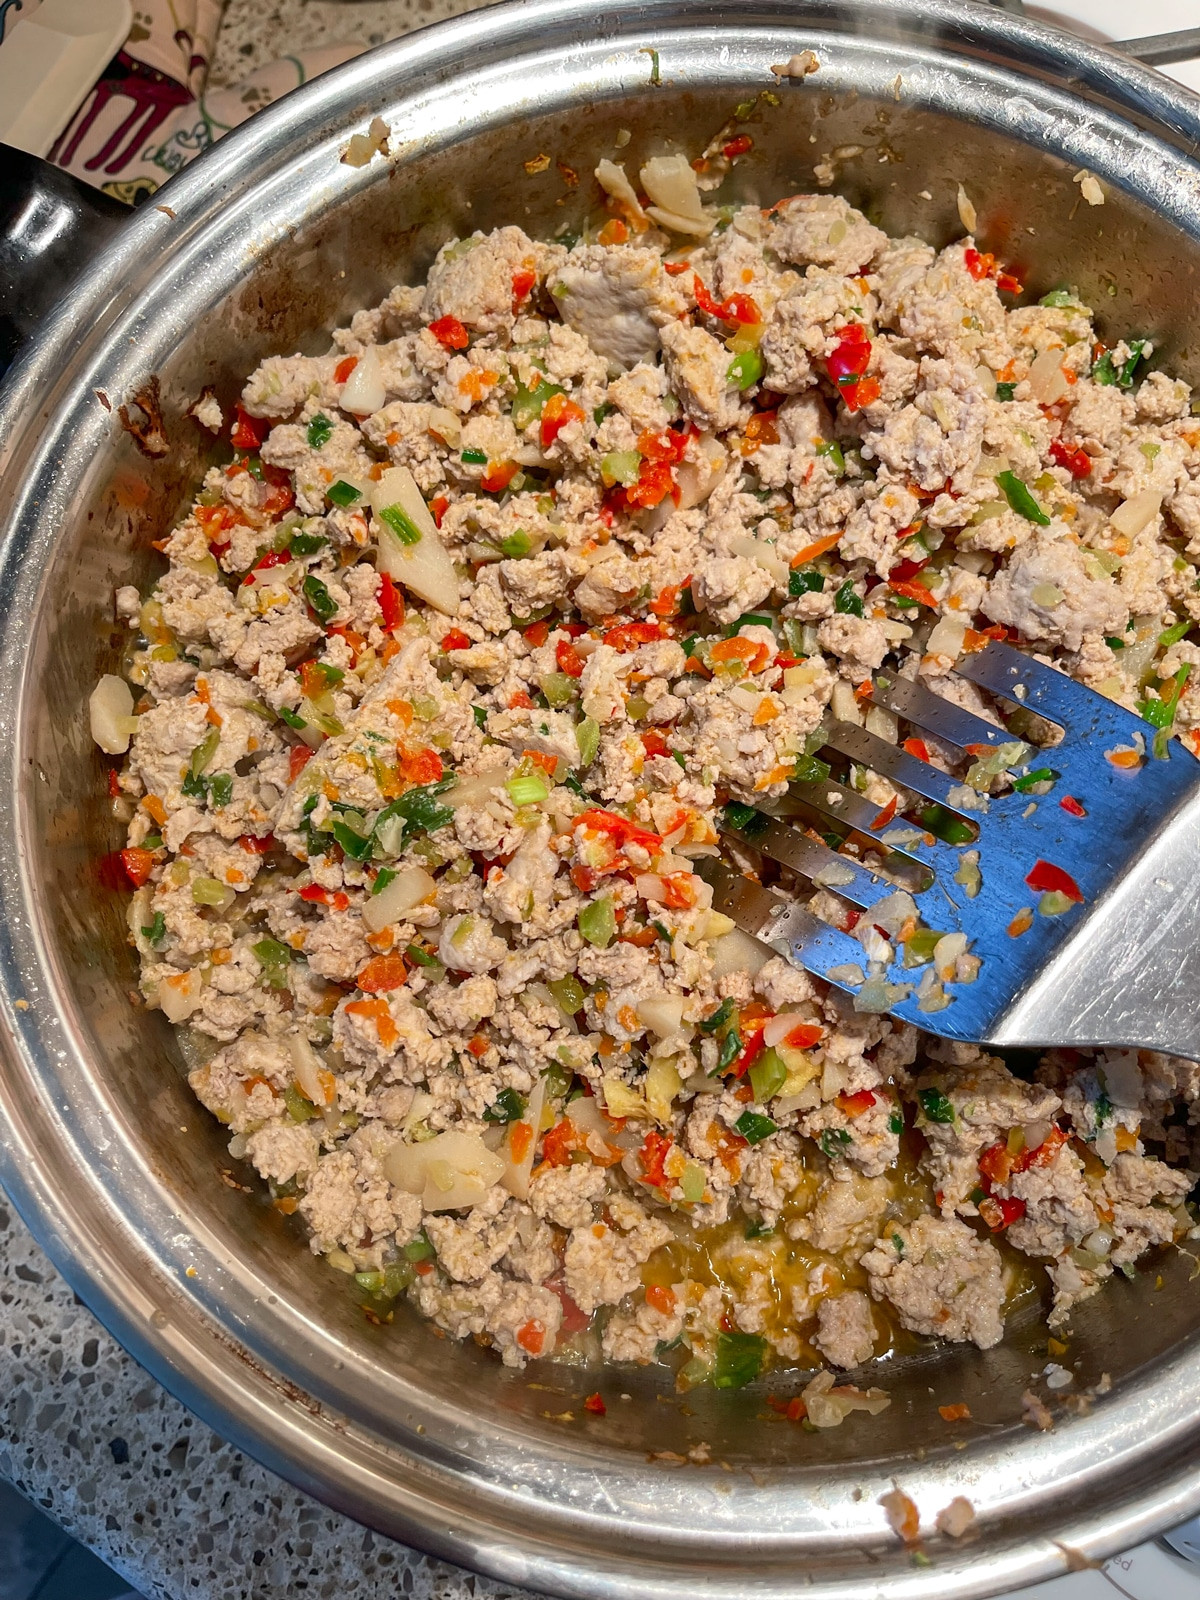 Ground turkey meat in a skillet with sauteed vegetables.